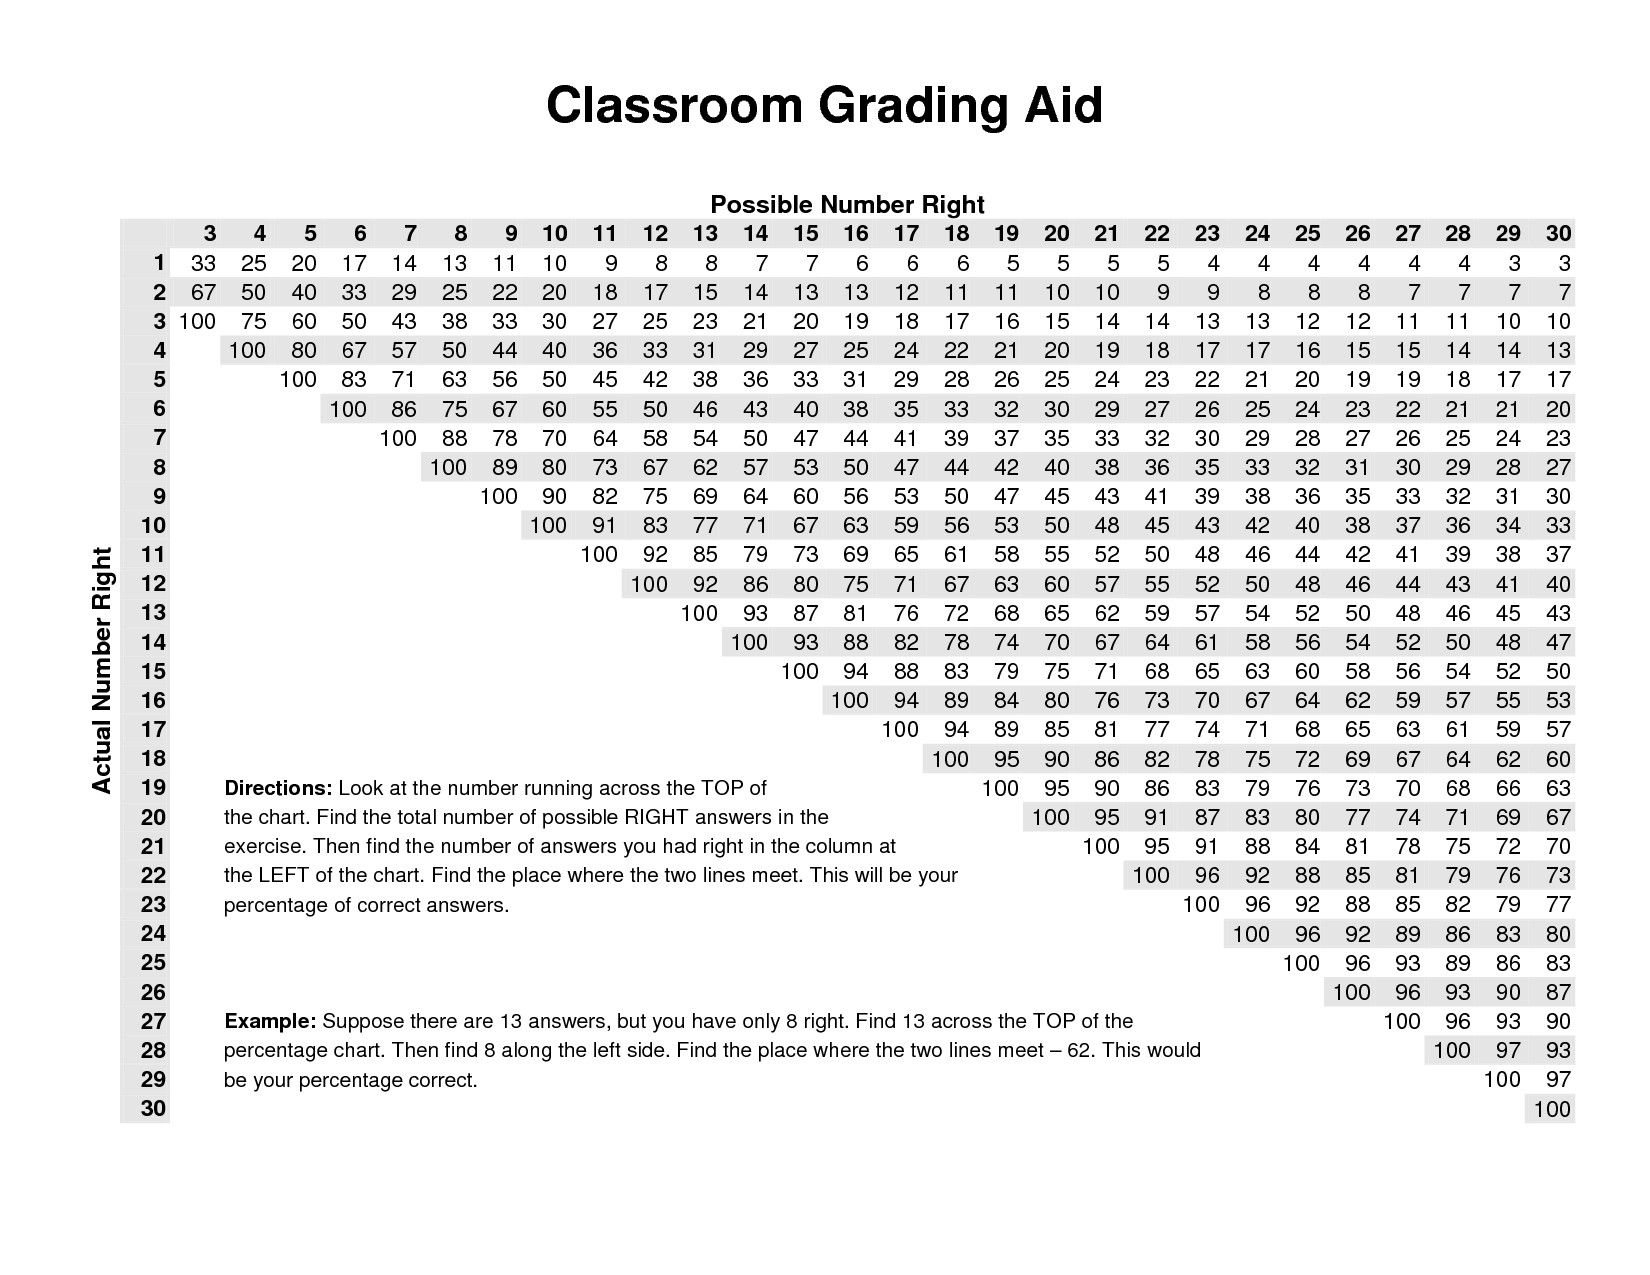 Grading chart printable school pinterest chart behavior sheet grading chart printable geenschuldenfo Choice Image